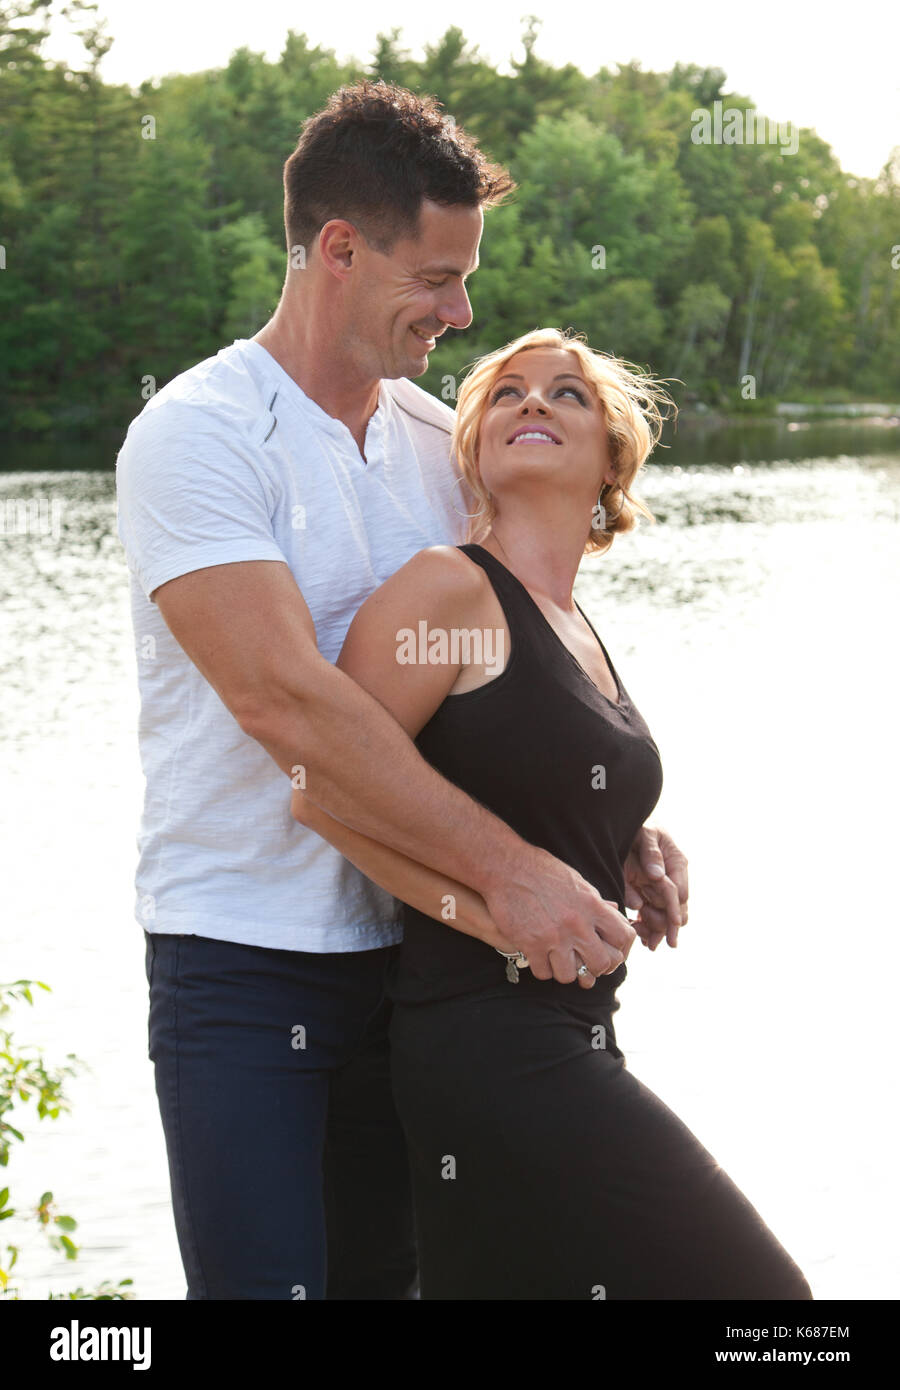 a dark haired man looks down and smiles at his beautiful blond wife by a lake - Stock Image